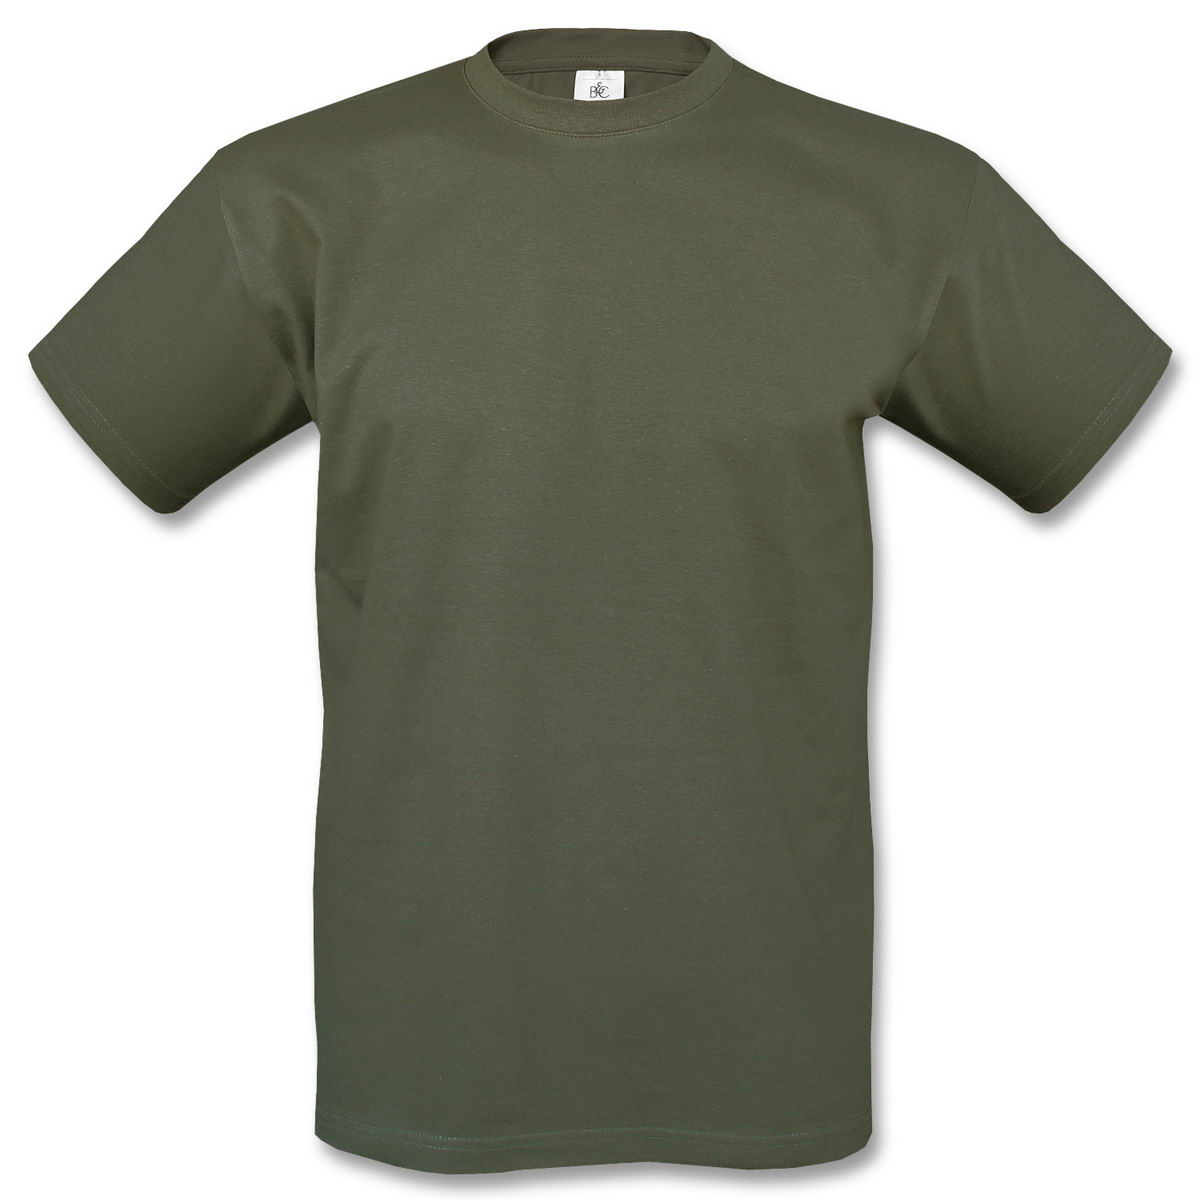 T-SHIRT OLIVE MAAT S